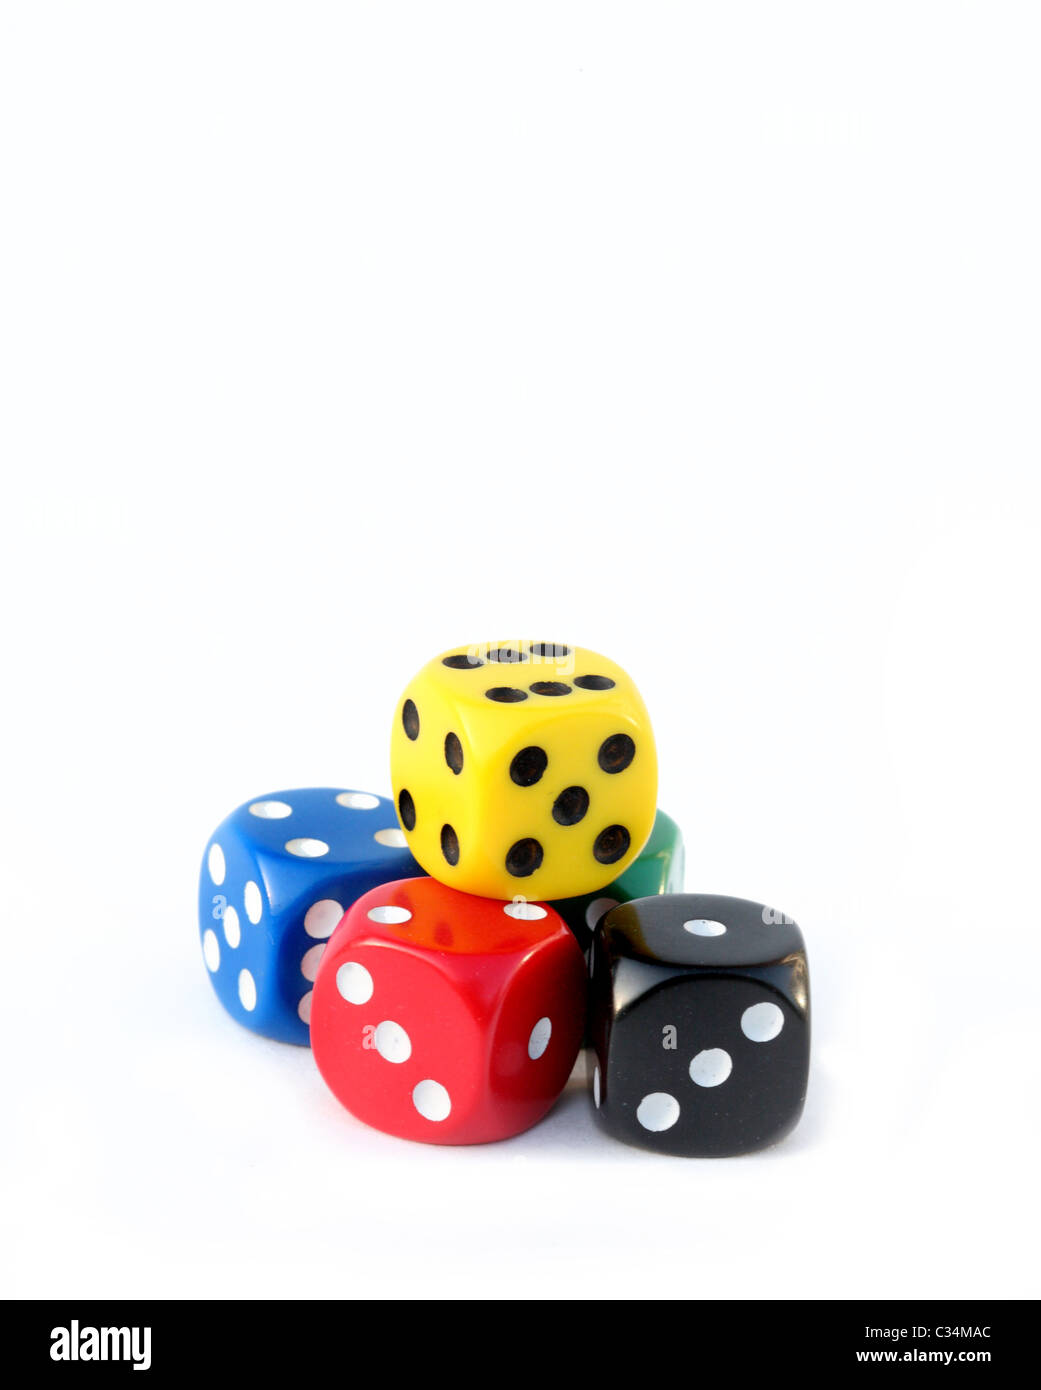 Multi colored dice - Stock Image